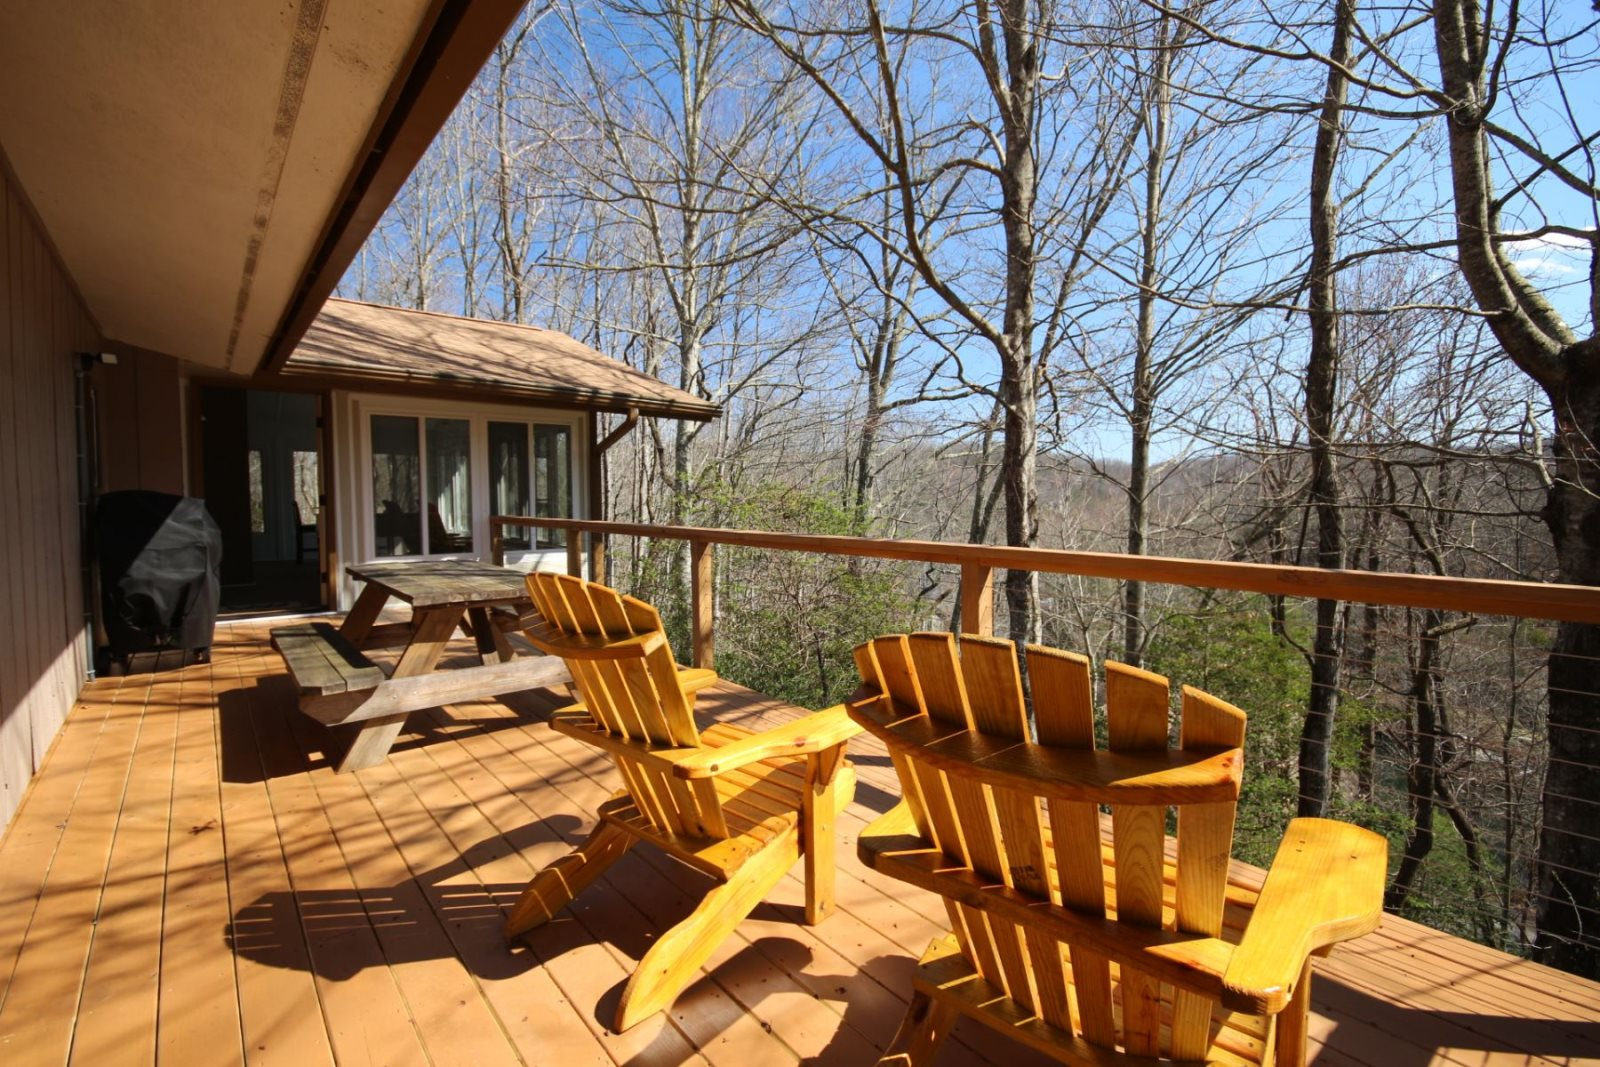 Ticoa Heights Place To Stay On Vacation 3 Bedroom 2 Full Bathroom Brevard North Carolina 147858 Find Rentals